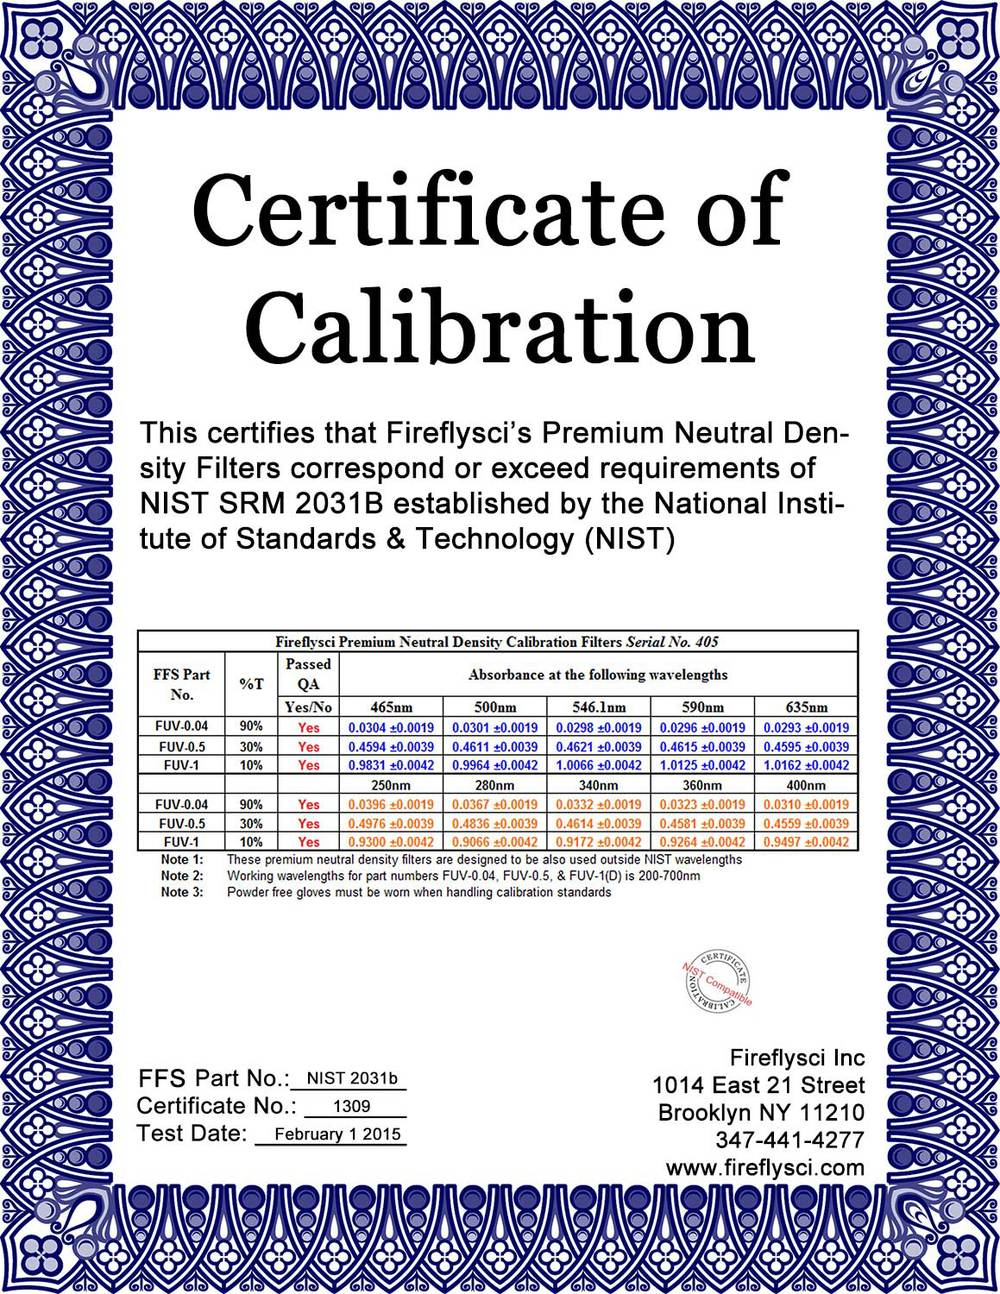 NIST 2031 Kit Sample Certificate of Calibration